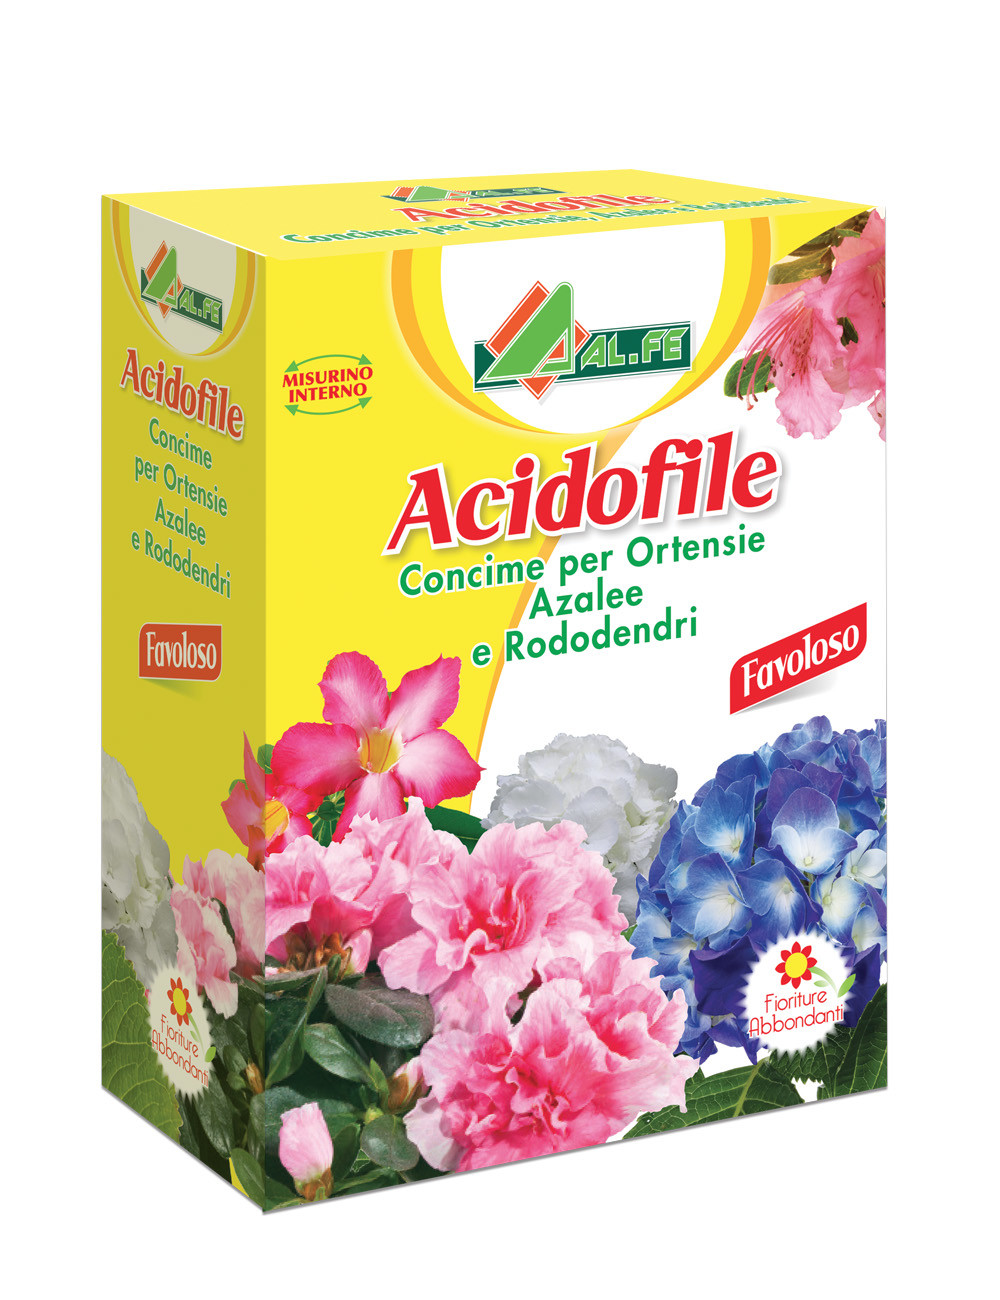 Acidofile - Fertilizzanti